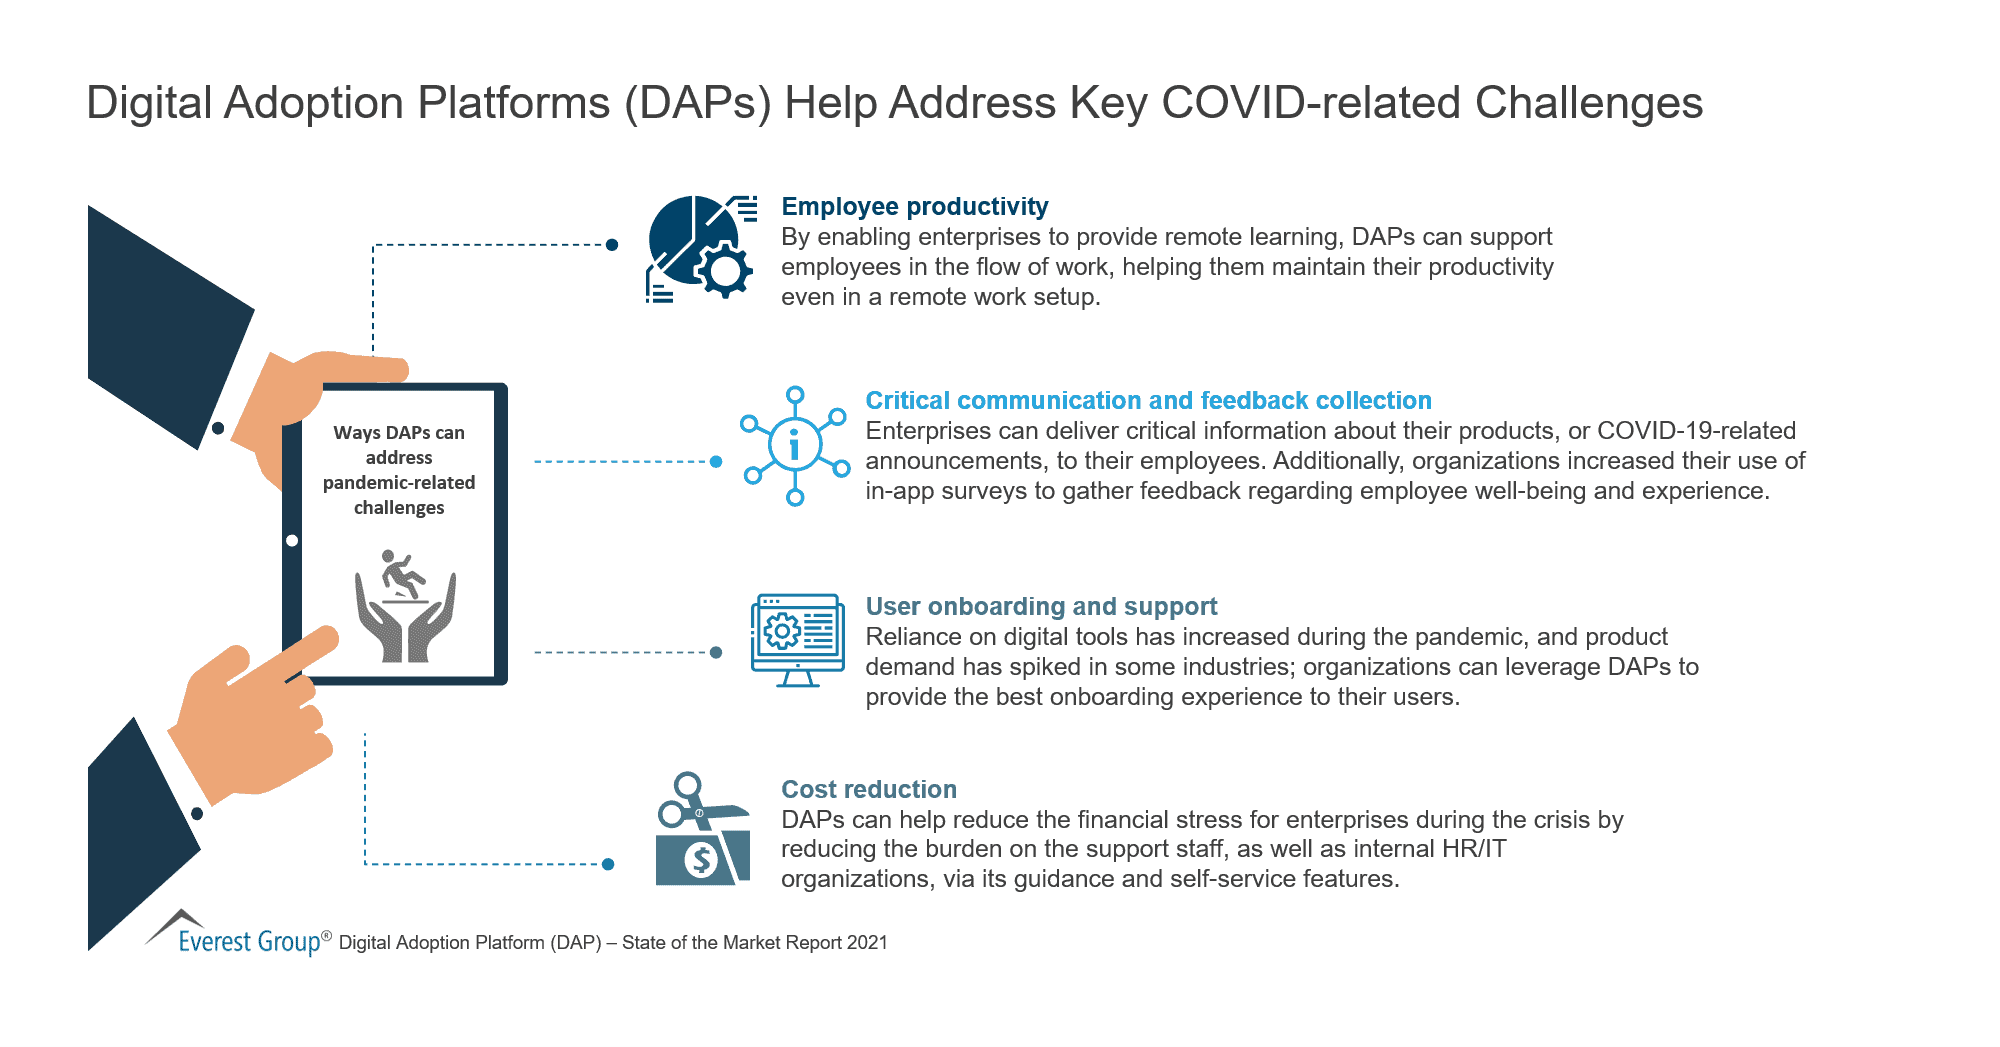 Digital Adoption Platforms (DAPs) Help Address Key COVID-related Challenges